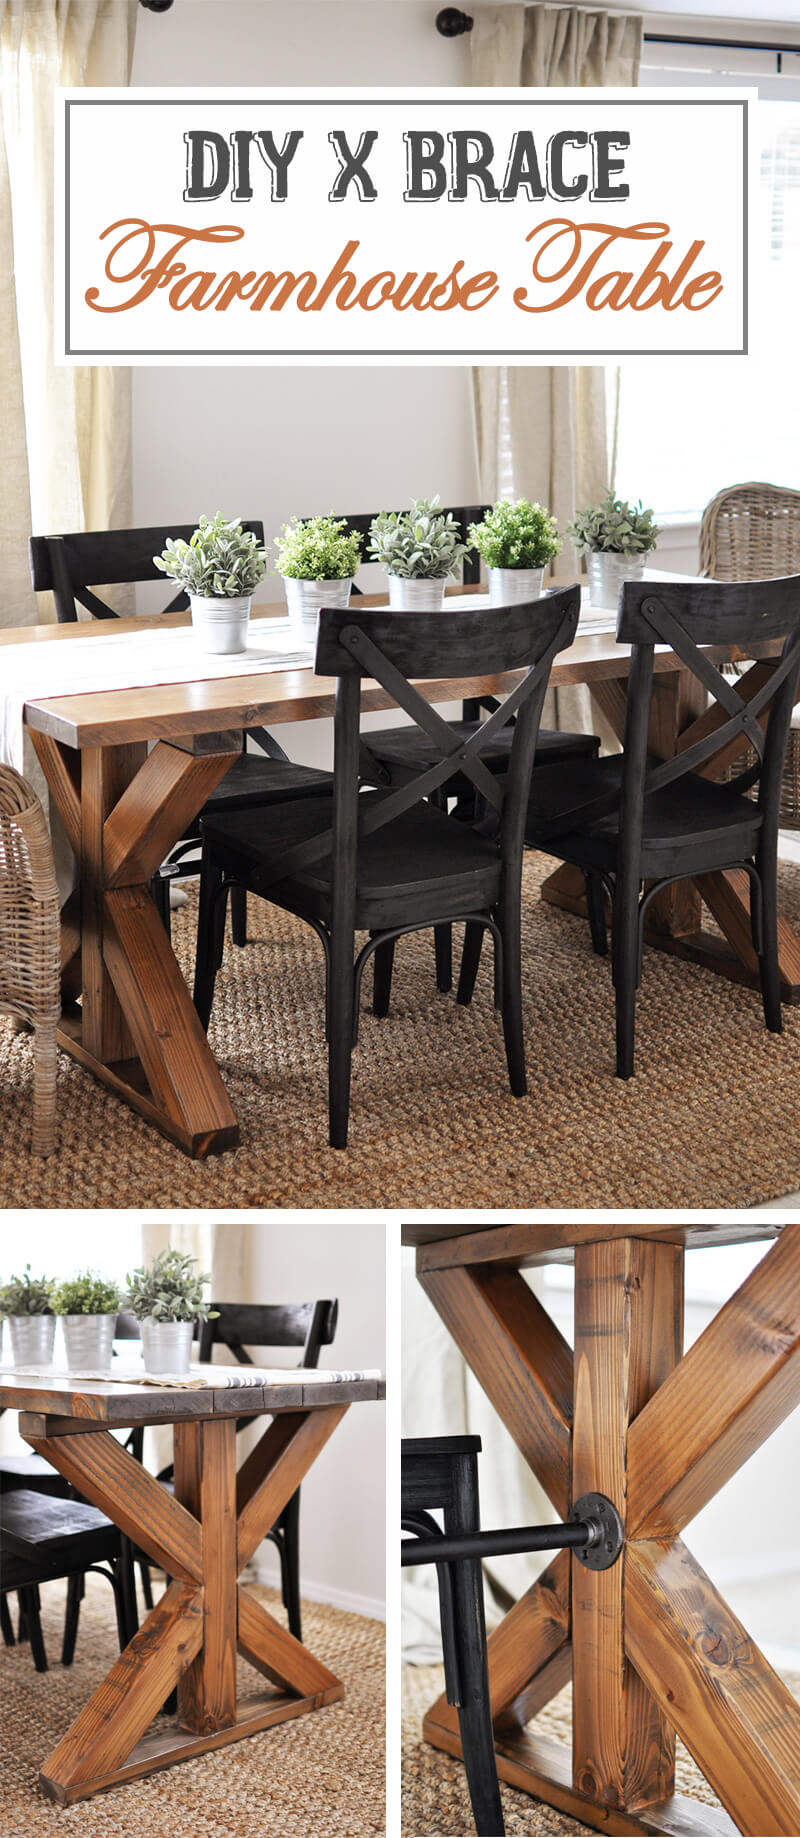 X-Brace Accent Farmhouse Table Design